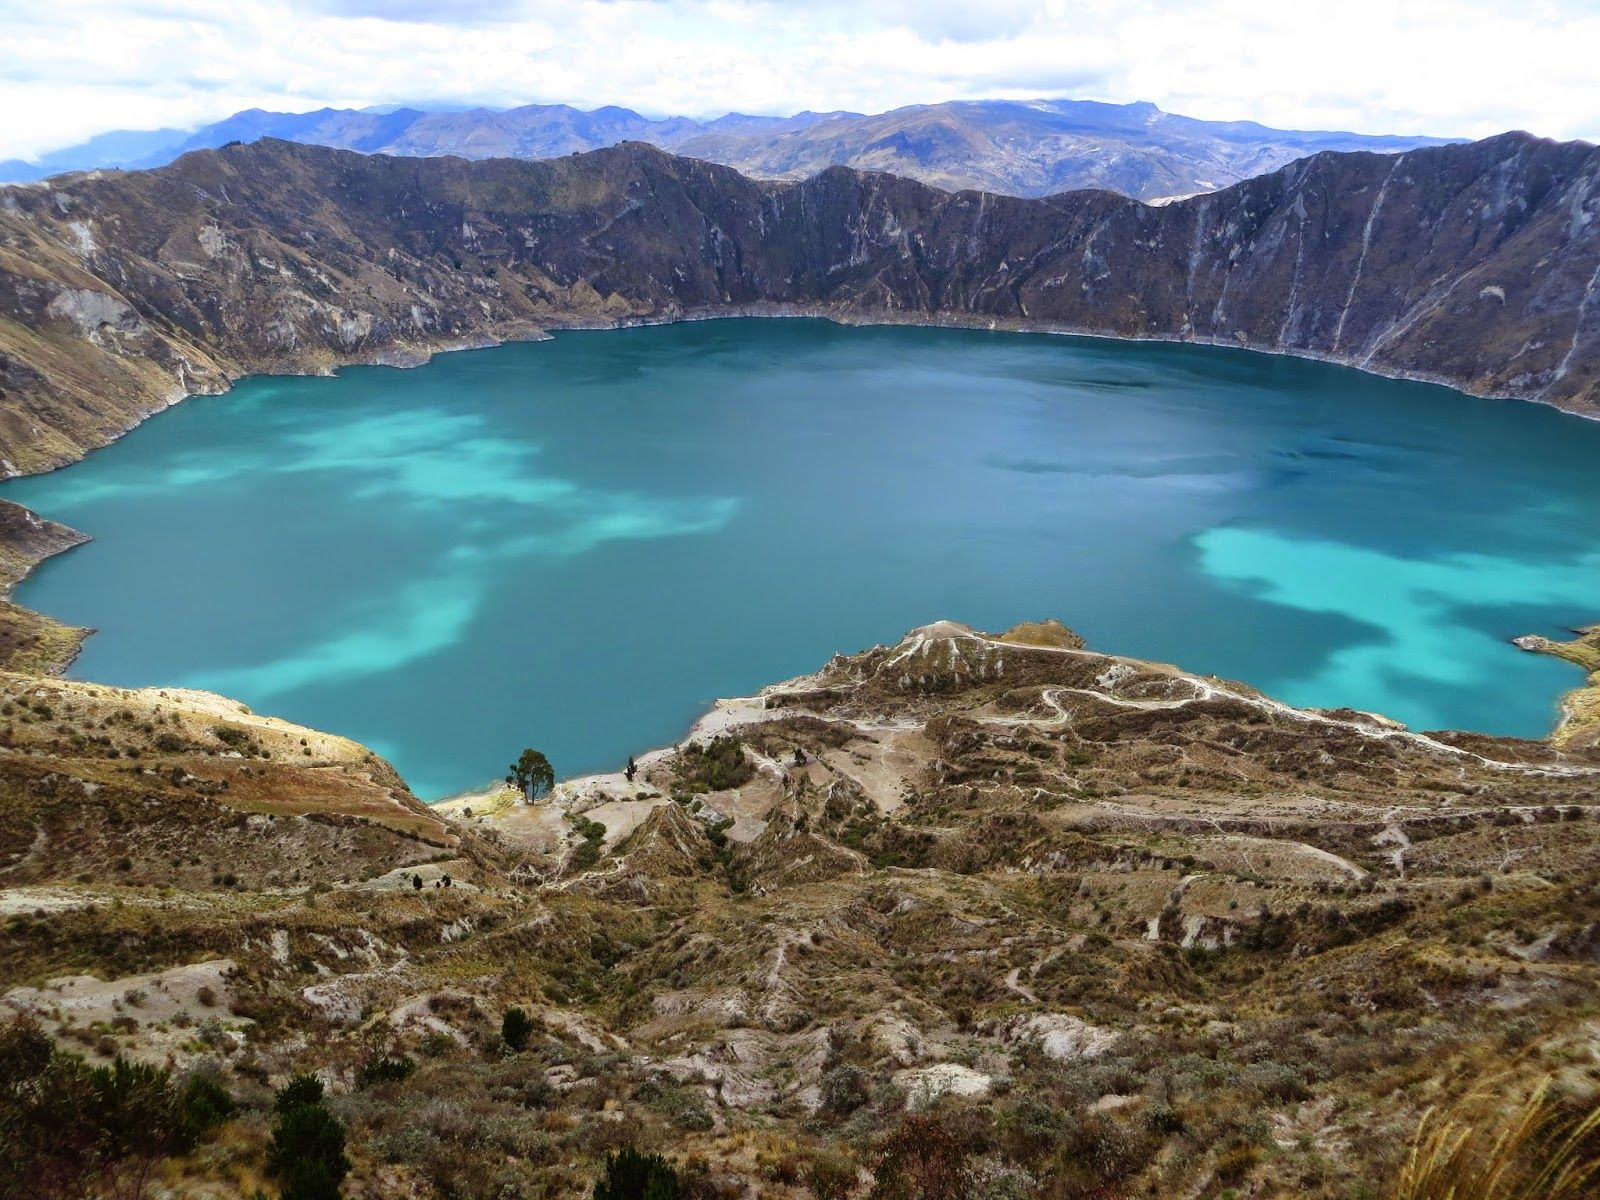 Incredible Quilotoa Travel Inspirations Travel inspiration 1600x1200